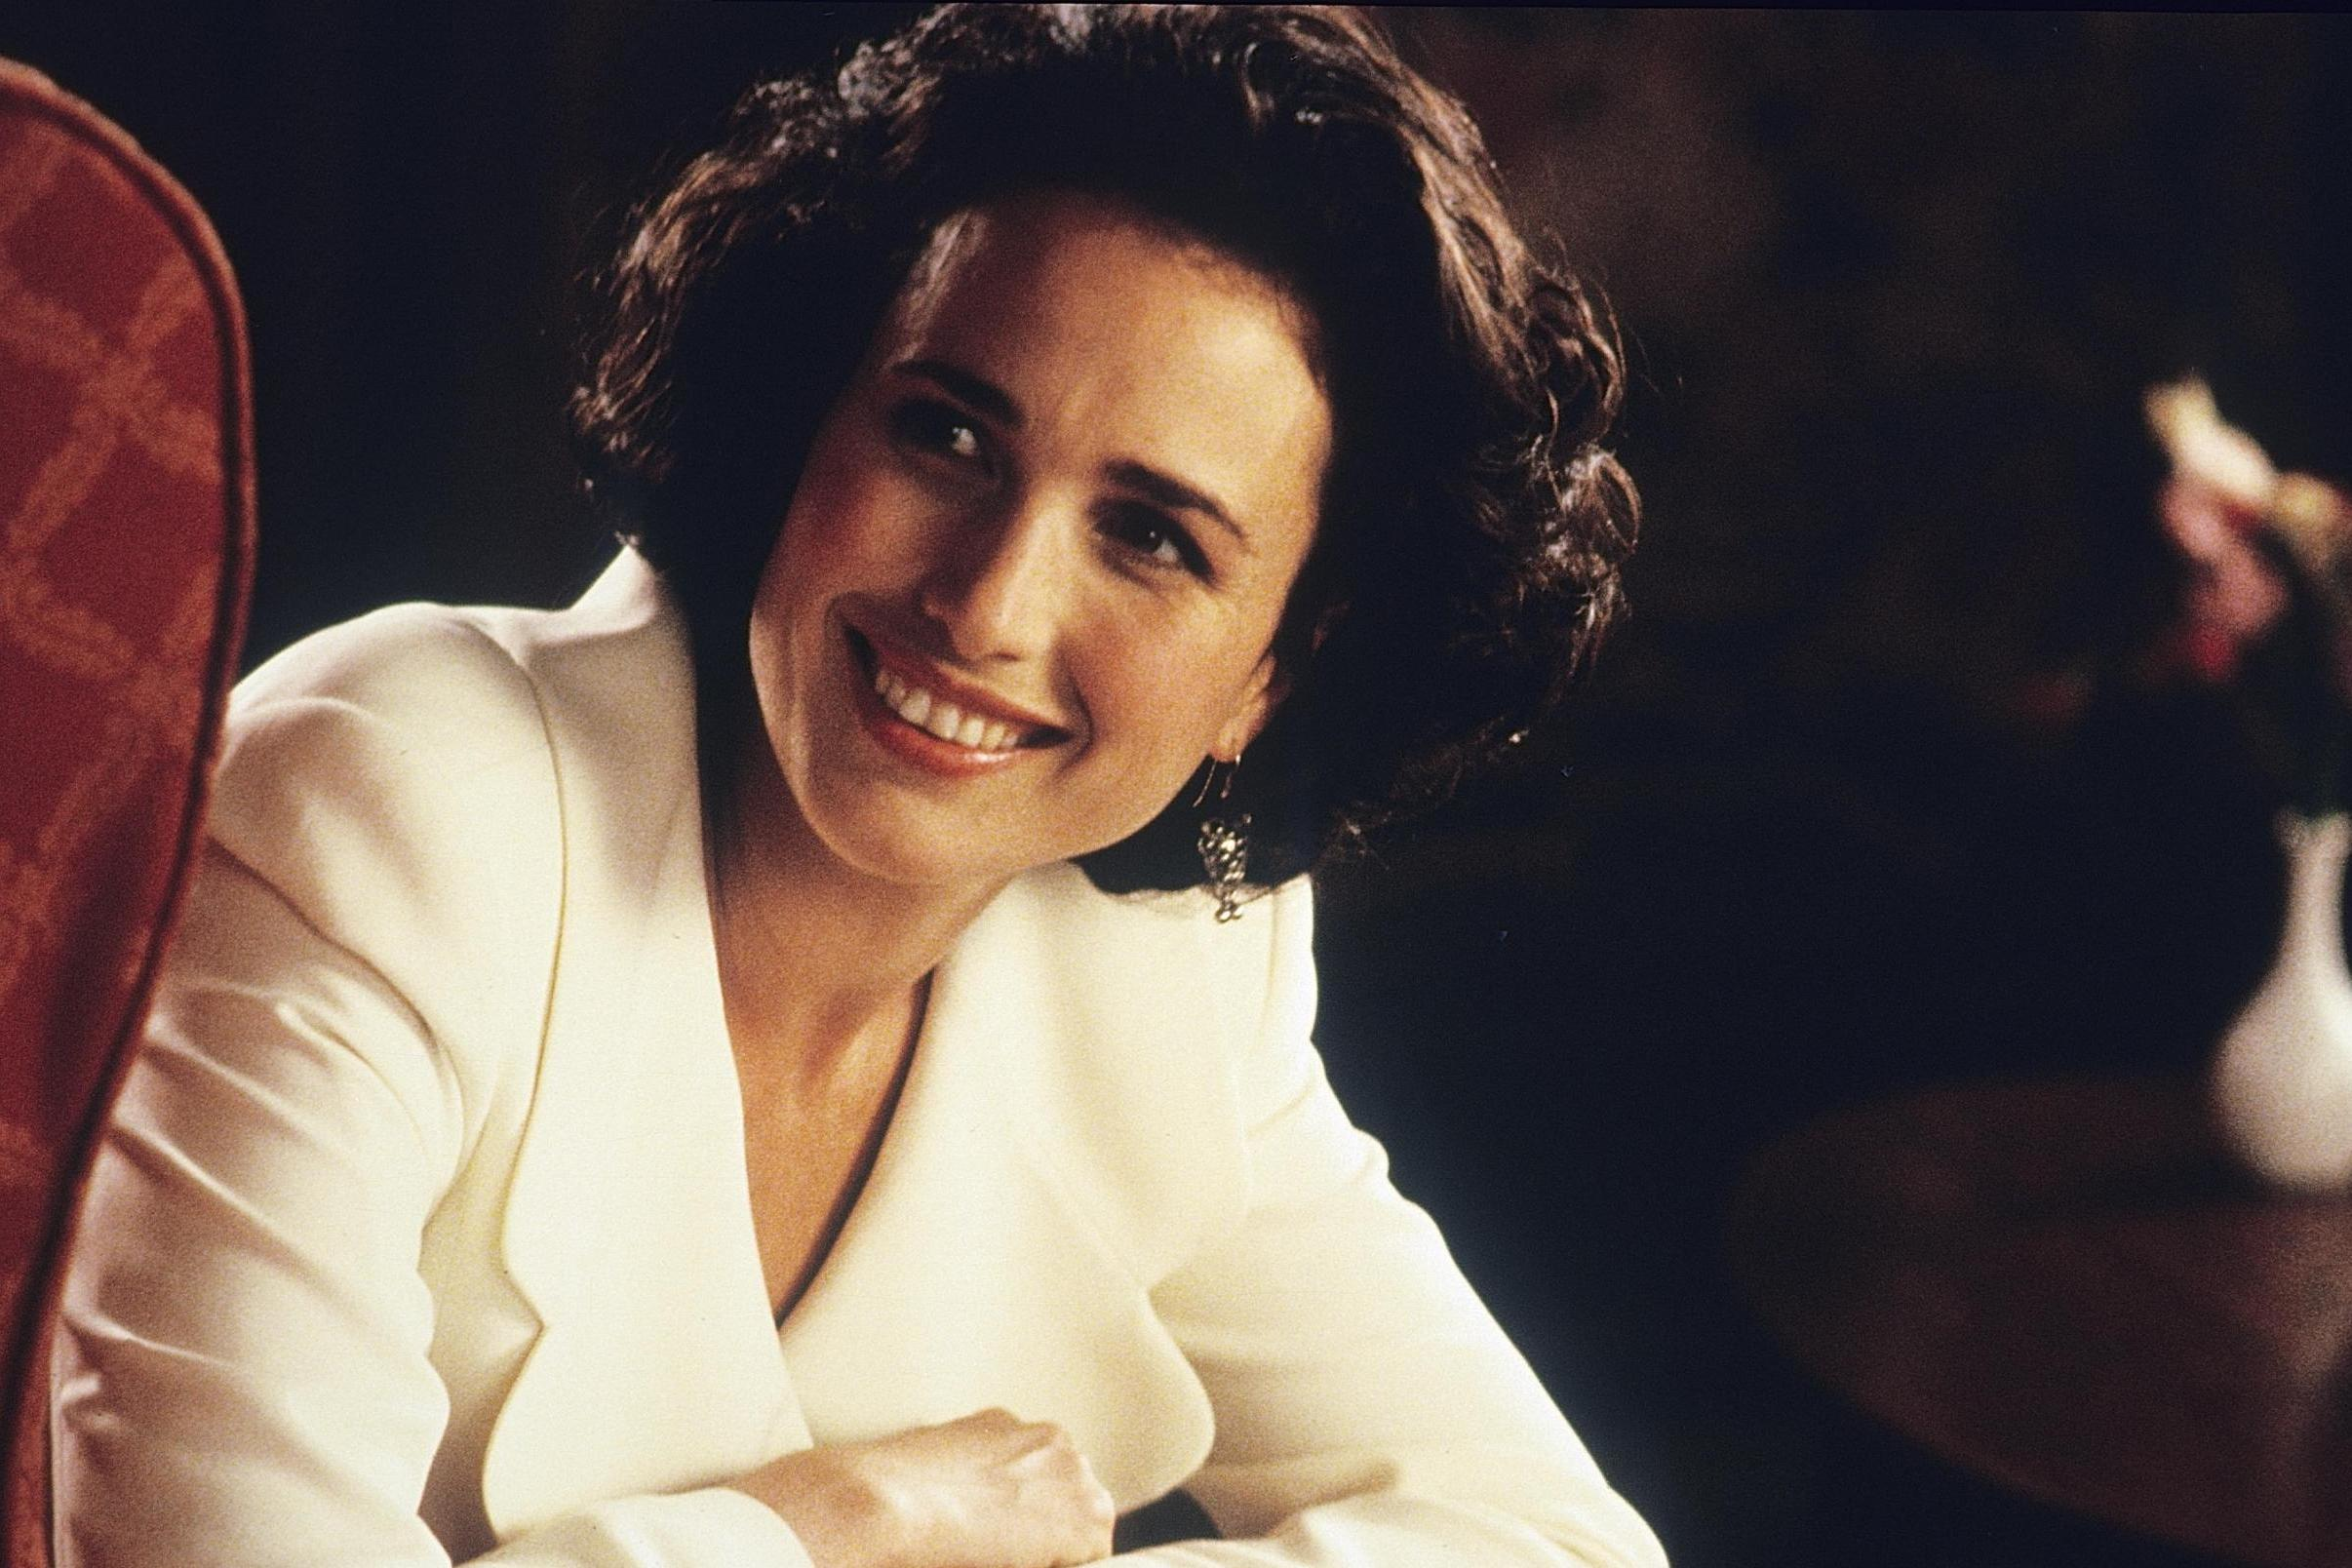 Four Weddings and a Funeral TV series: Andie MacDowell